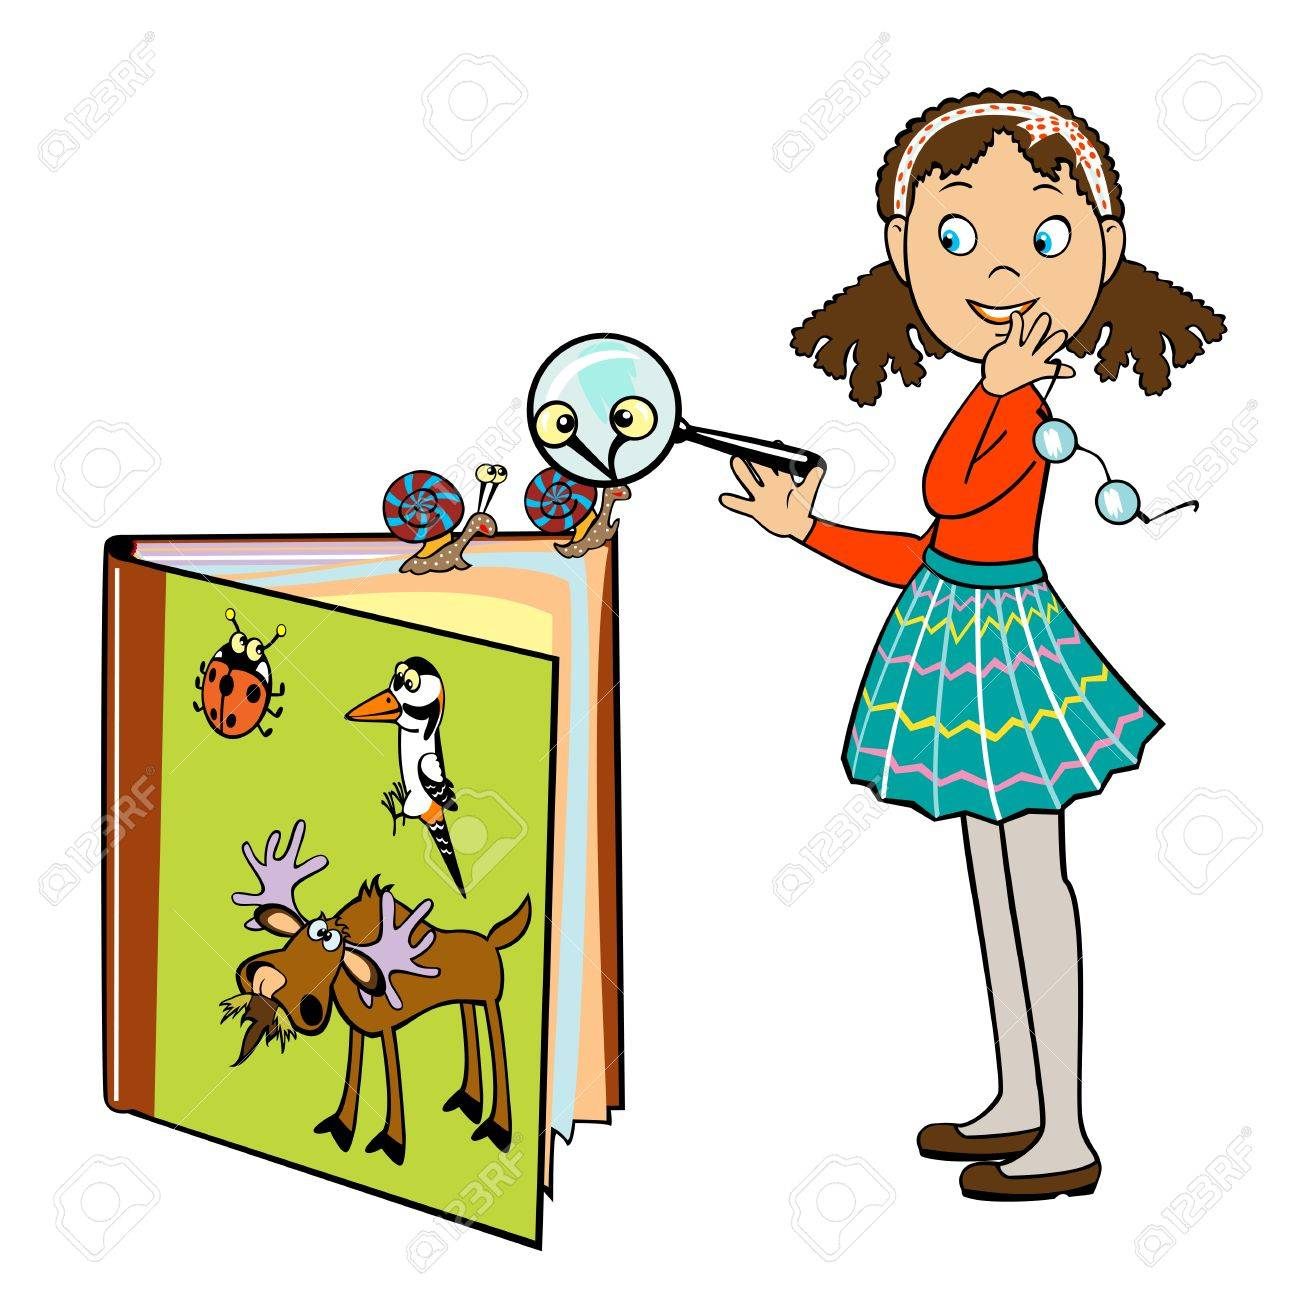 standing little school girl by book of animals and holding magnifying glass ,vector picture isolated on white background,children illustration Stock Vector - 15260546